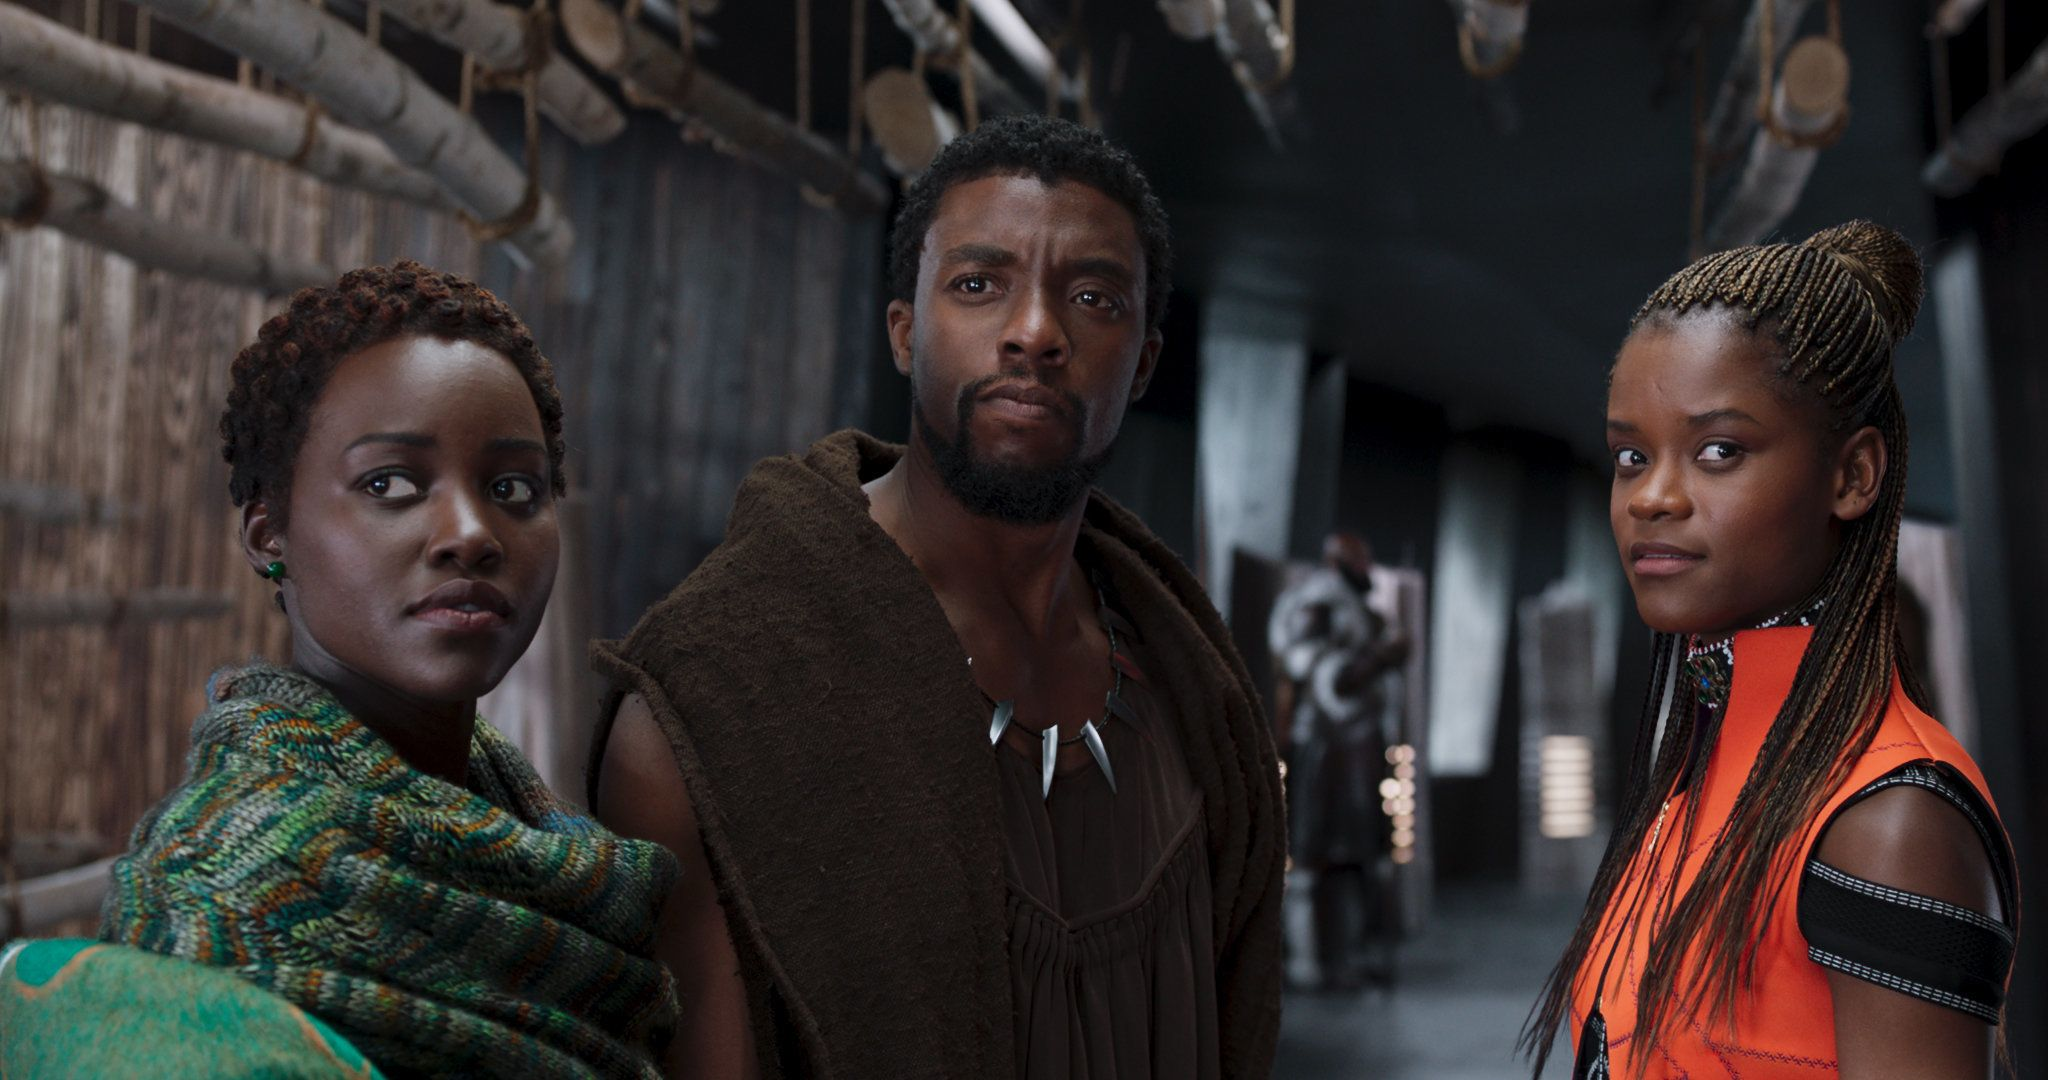 """Marvel Studios' """"Black Panther"""" follows T'Challa who, after the death of his father, the King of Wakanda, returns home to the isolated, technologically advanced African nation to succeed to the throne and take his rightful place as king. But when a powerful old enemy reappears, T'Challa's mettle as king—and Black Panther—is tested when he is drawn into a formidable conflict that puts the fate of Wakanda and the entire world at risk.Faced with treachery and danger, the young king must rally his allies and release the full power of Black Panther to defeat his foes and secure the safety of his people and their way of life. """"Black Panther"""" stars Chadwick Boseman, Michael B. Jordan, Lupita Nyong'o, Danai Gurira, Martin Freeman, Daniel Kaluuya, Letitia Wright, Winston Duke, with Angela Bassett, with Forest Whitaker, and Andy Serkis.  The film is directed by Ryan Cooglerand produced byKevin Feige withLouis D'Esposito, Victoria Alonso,Nate Moore, Jeffrey Chernov and Stan Lee serving as executive producers. Ryan Coogler & Joe Robert Colewrote the screenplay.Marvel Studios' """"Black Panther"""" hits U.S. theaters on February 16, 2018."""